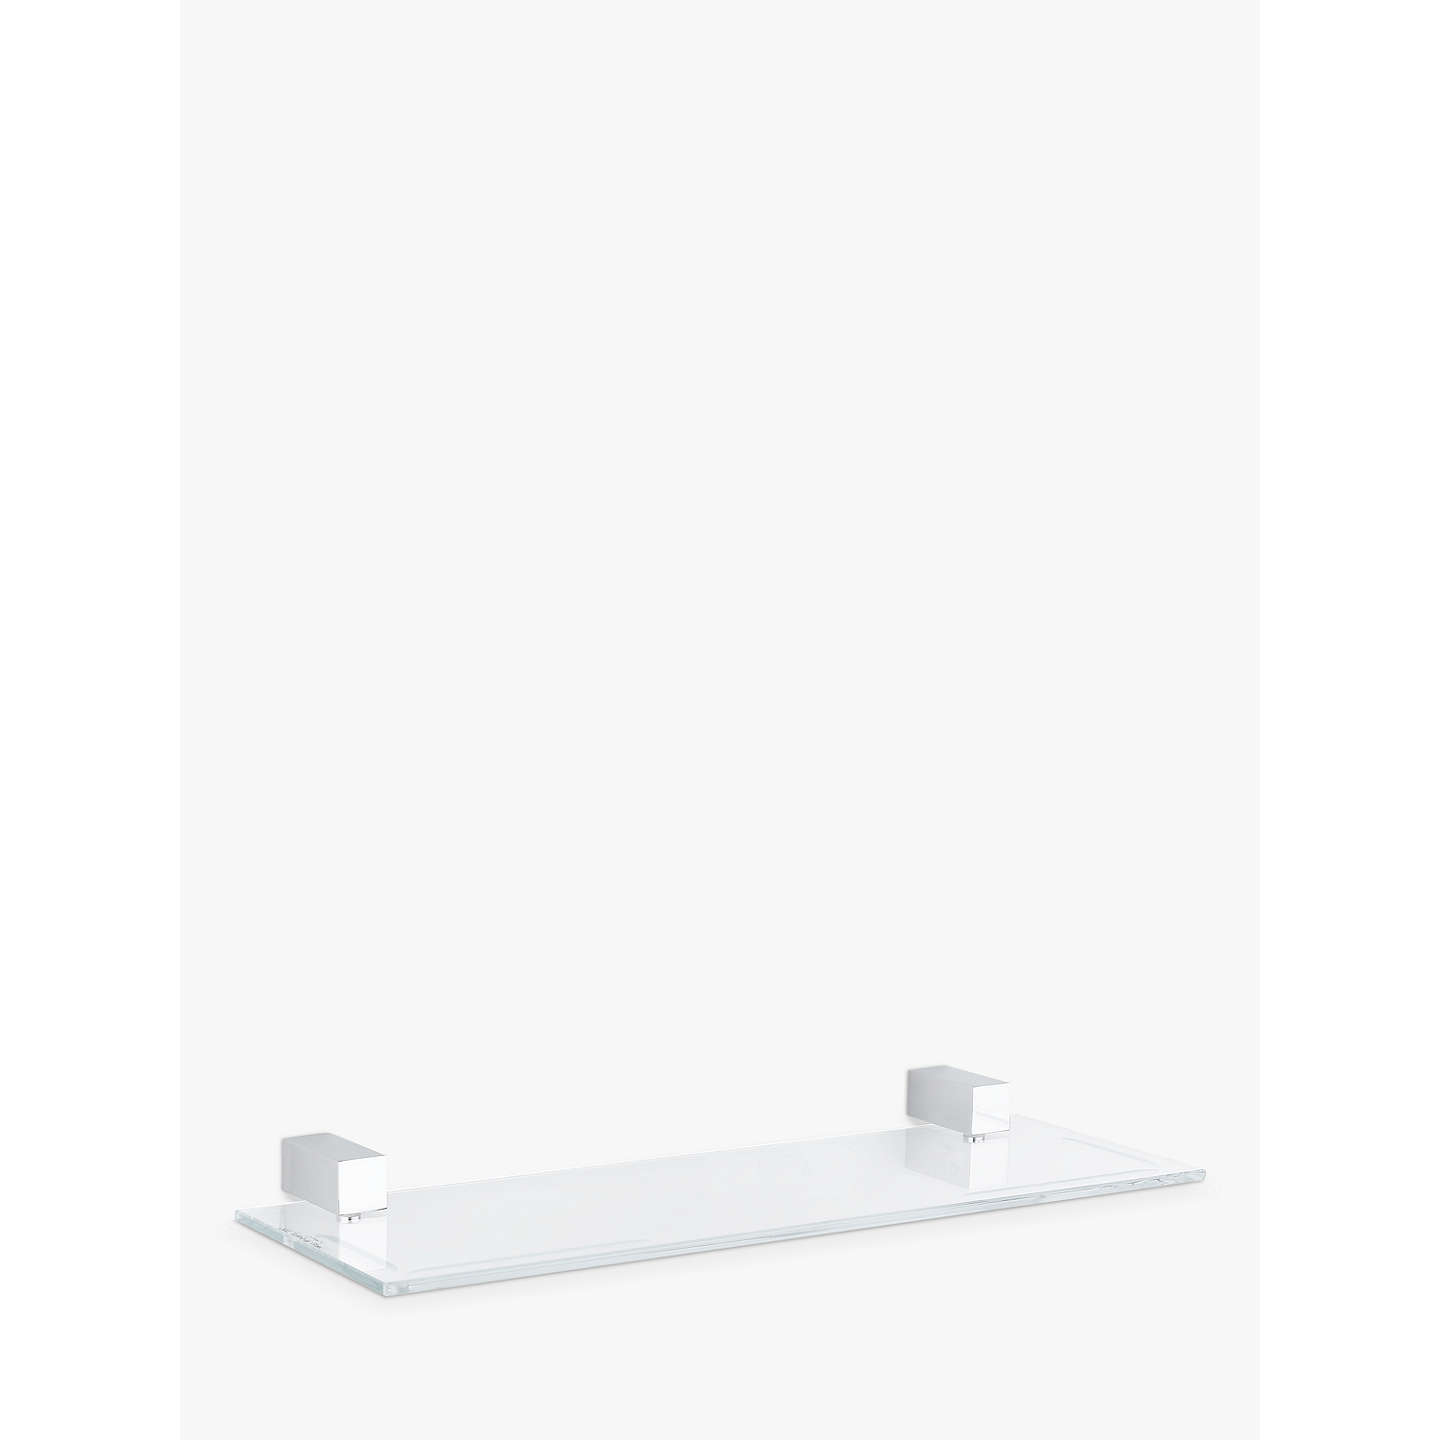 slate we home even diy this sugru and ceramics coasters ve to create handrail drilling n for a ideal shelves bonds marble with well metal is it shelf metals project how without wood bathroom because used